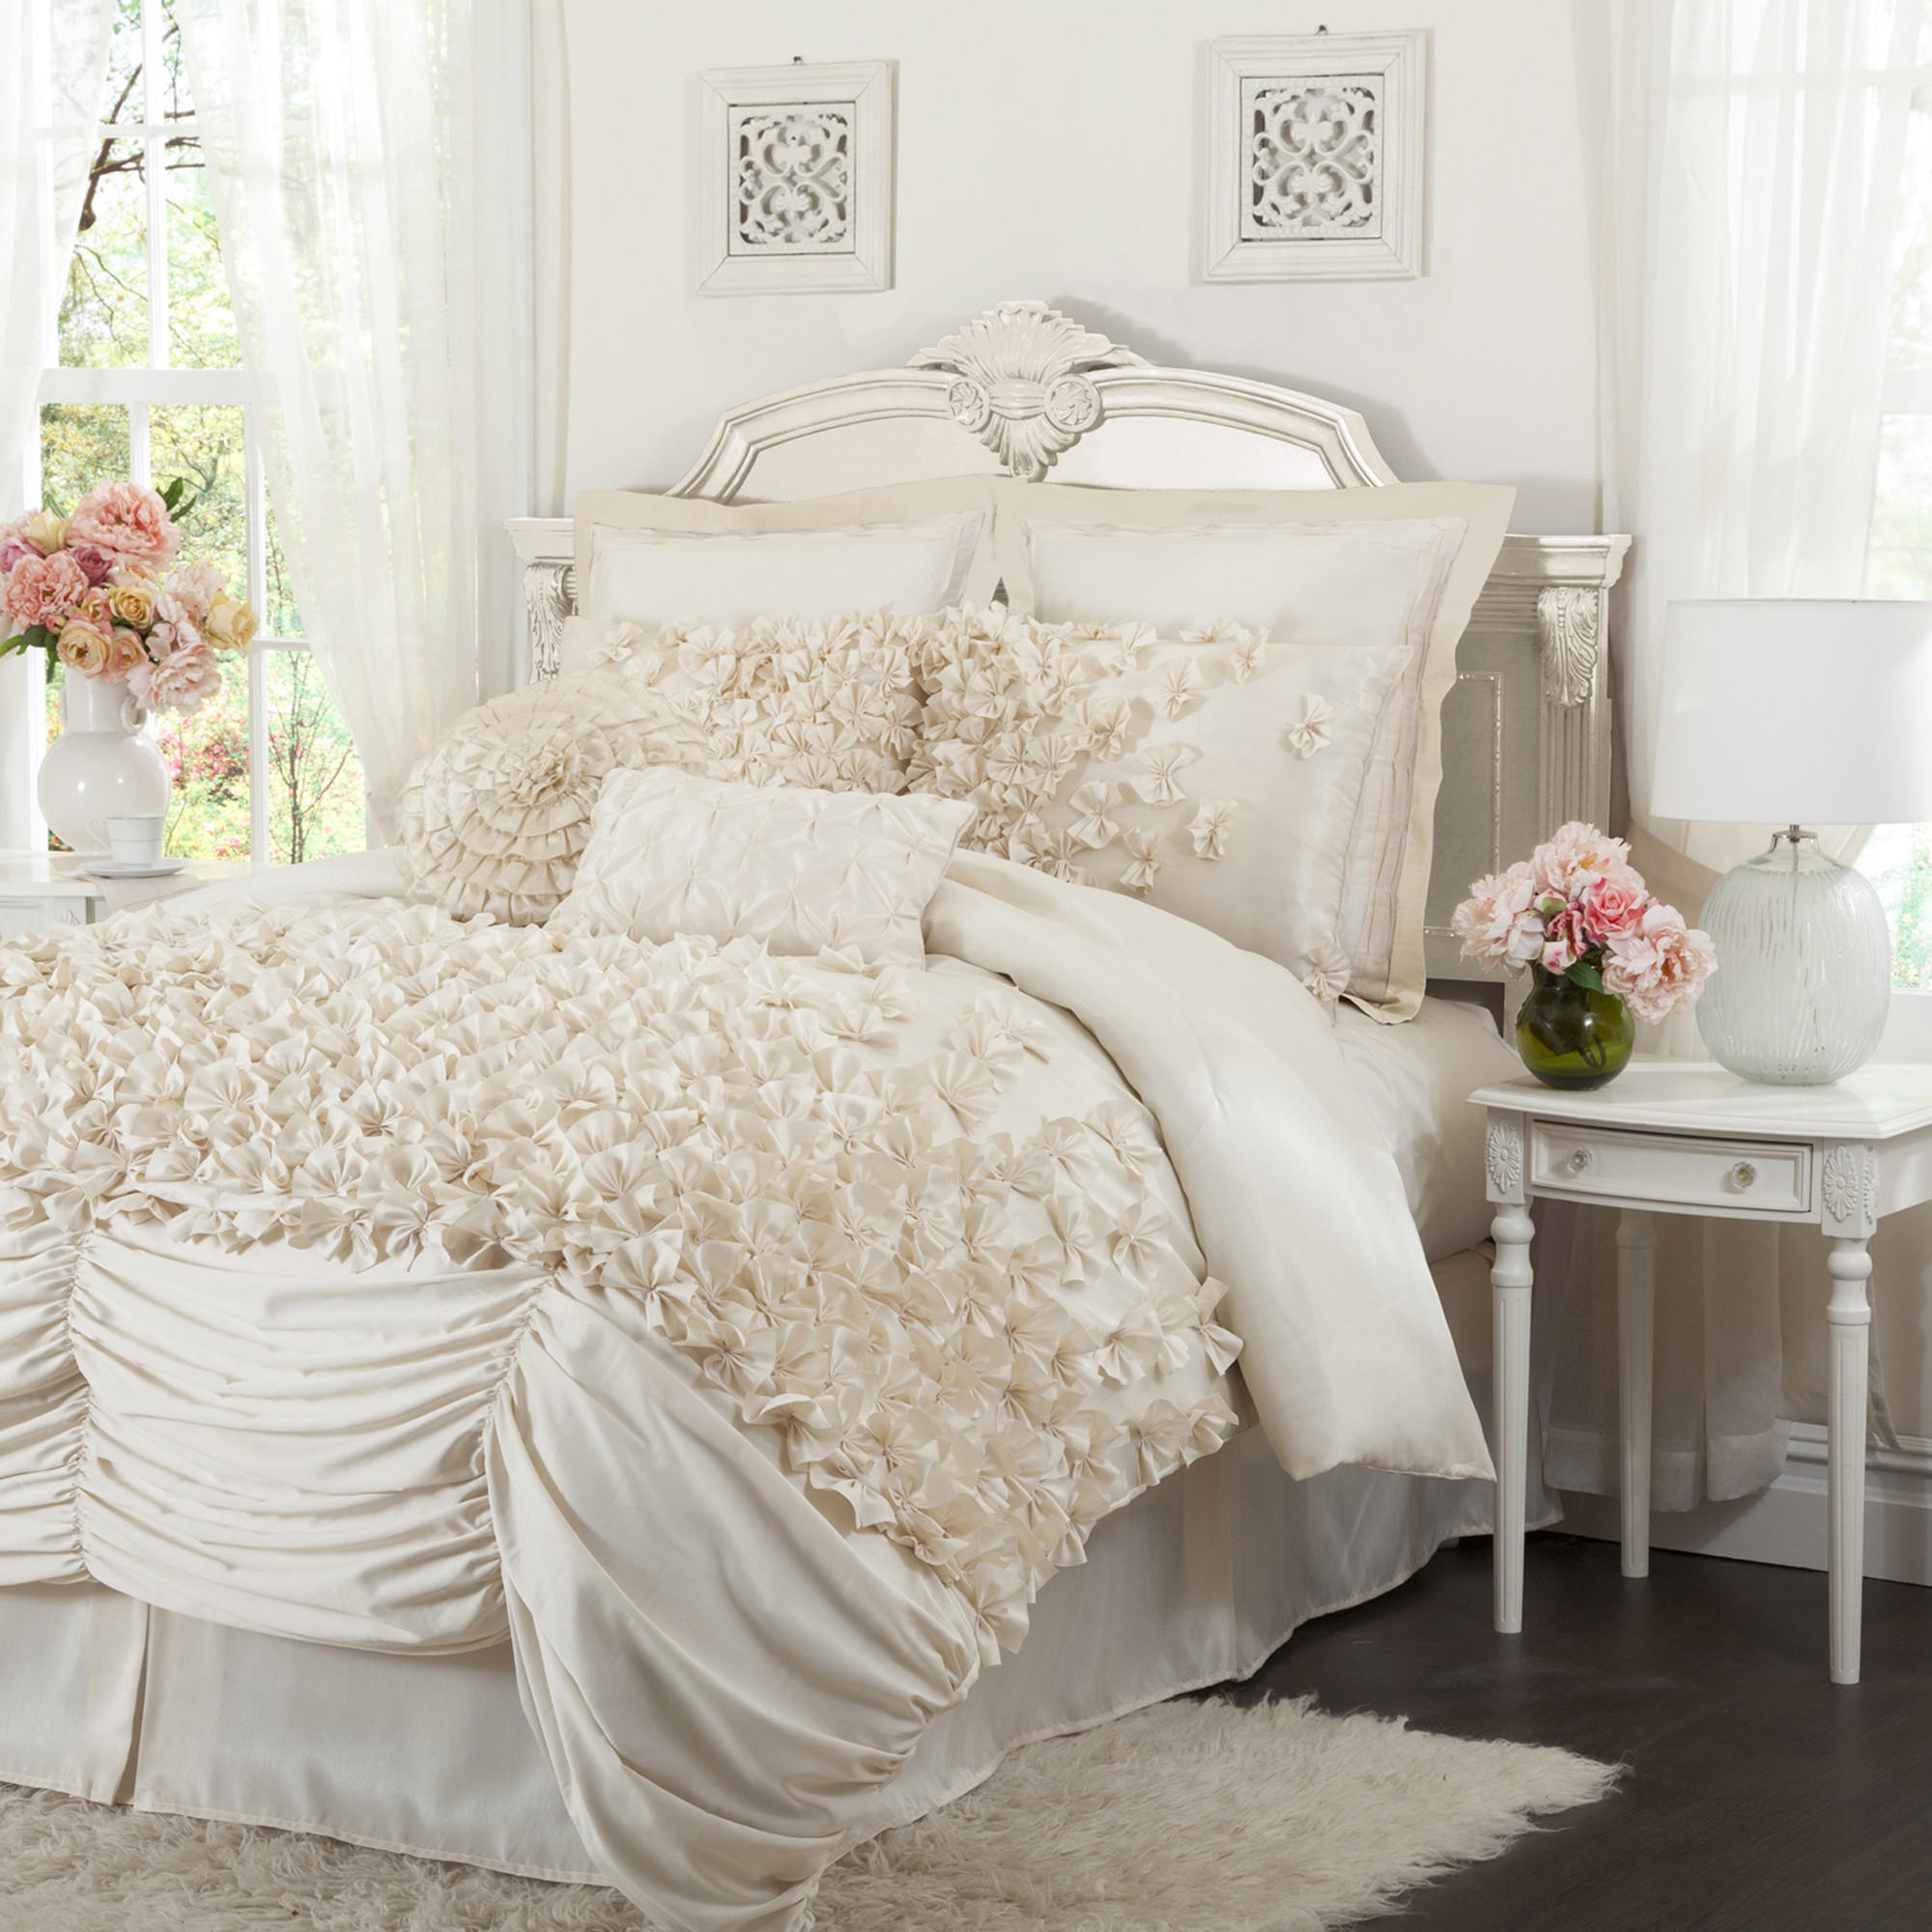 Lush Decor Lucia Bedding Collection From Wayfair